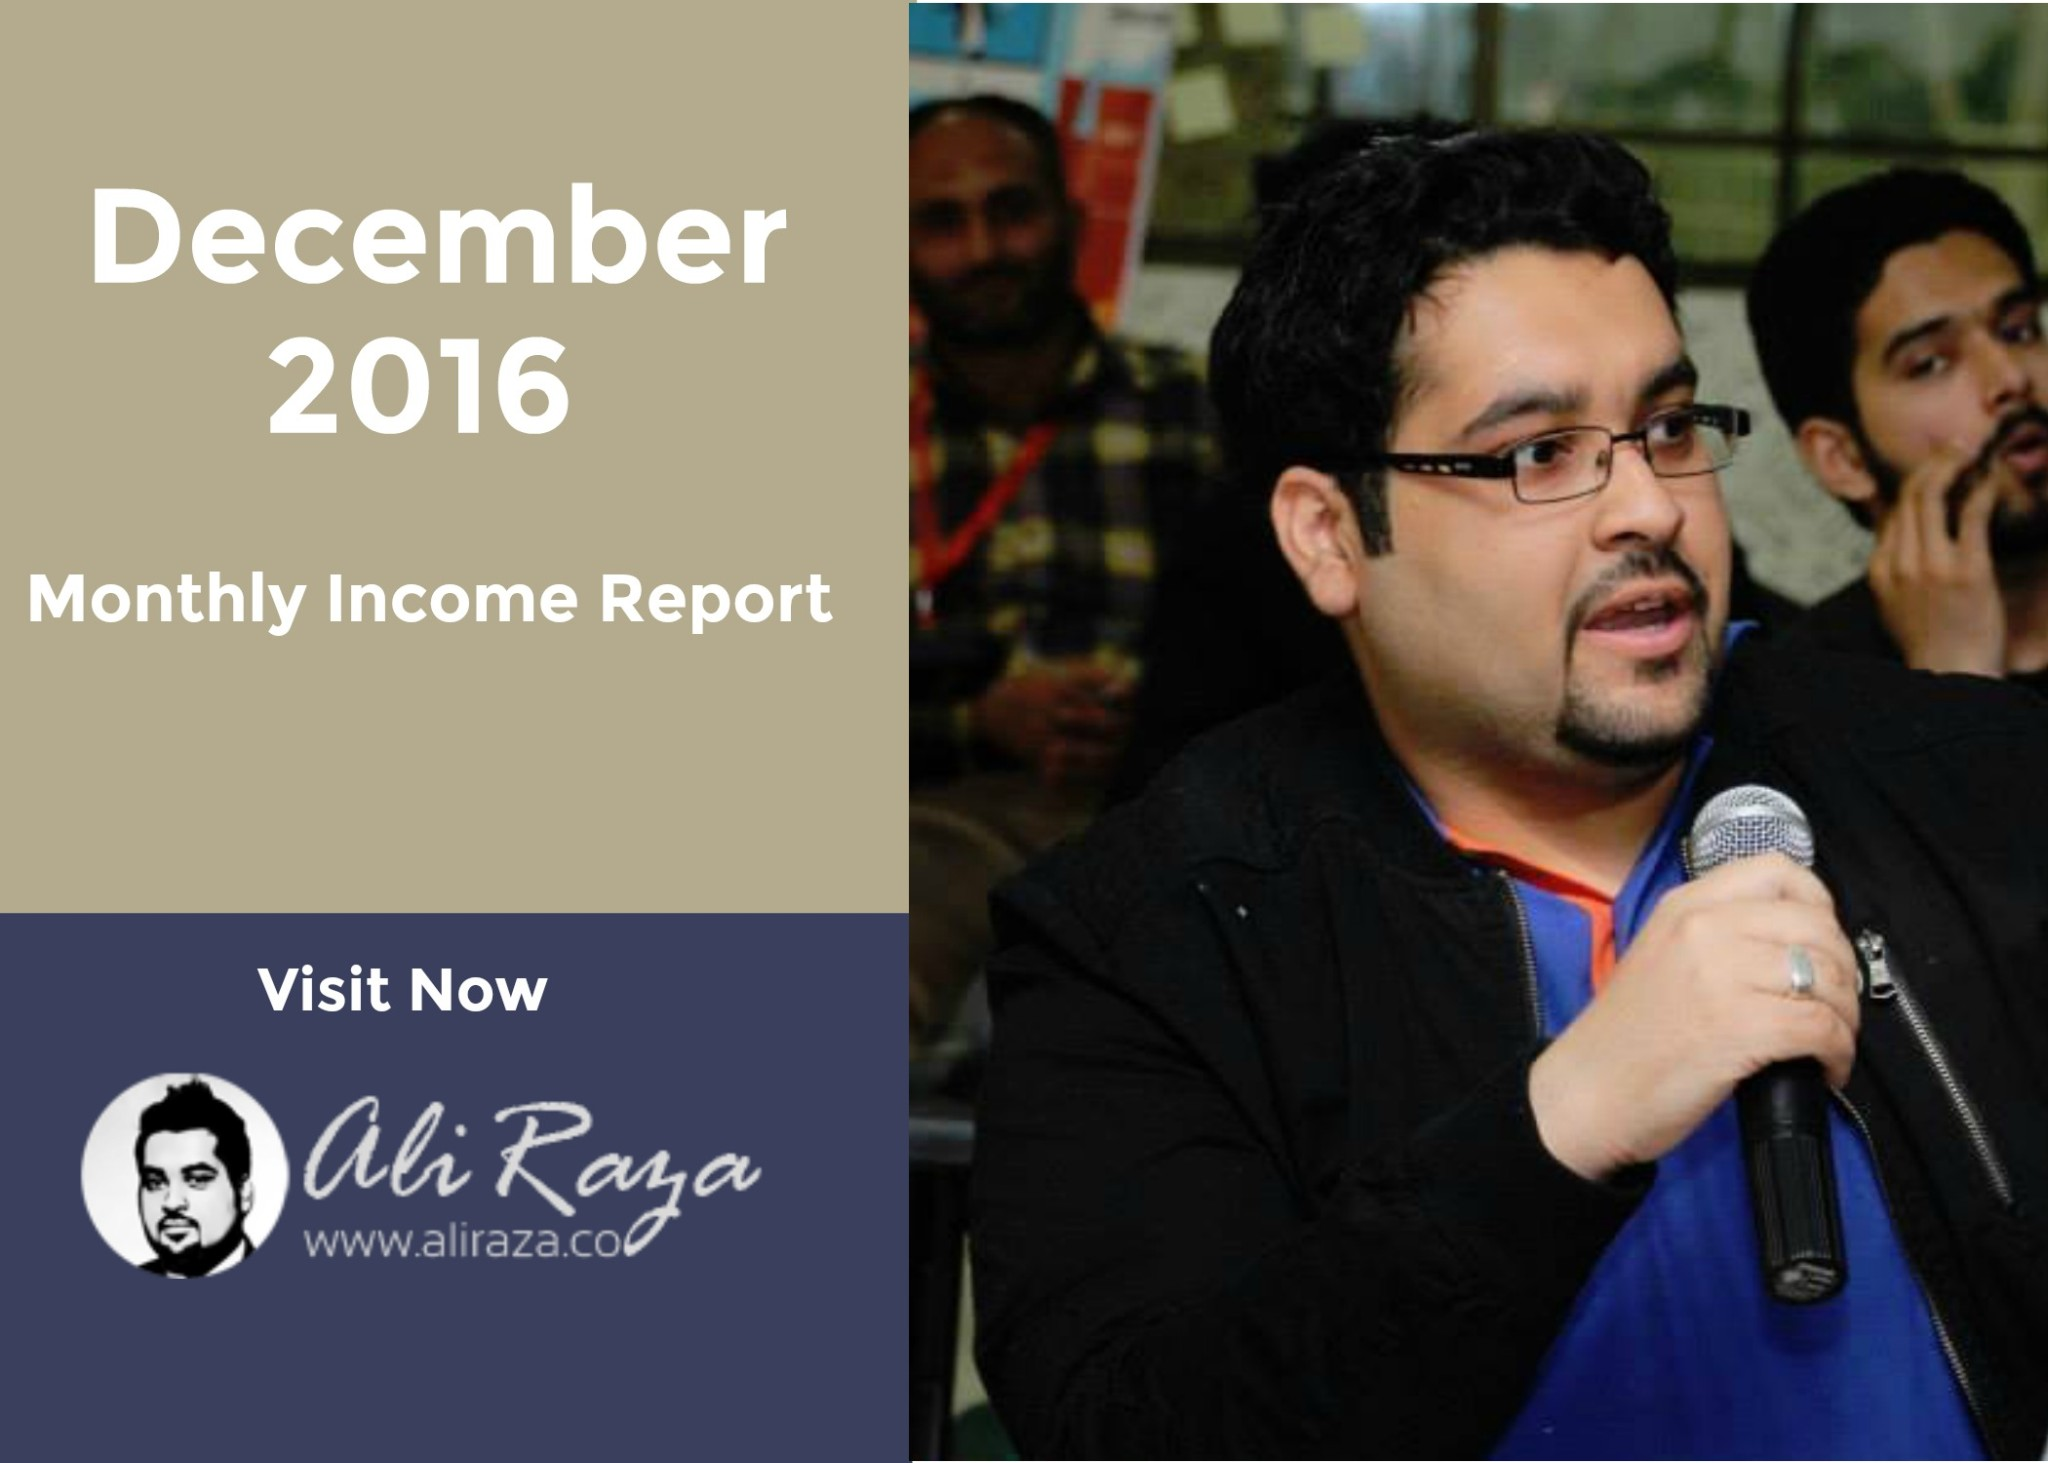 december 2016 monthly income report aliraza.co